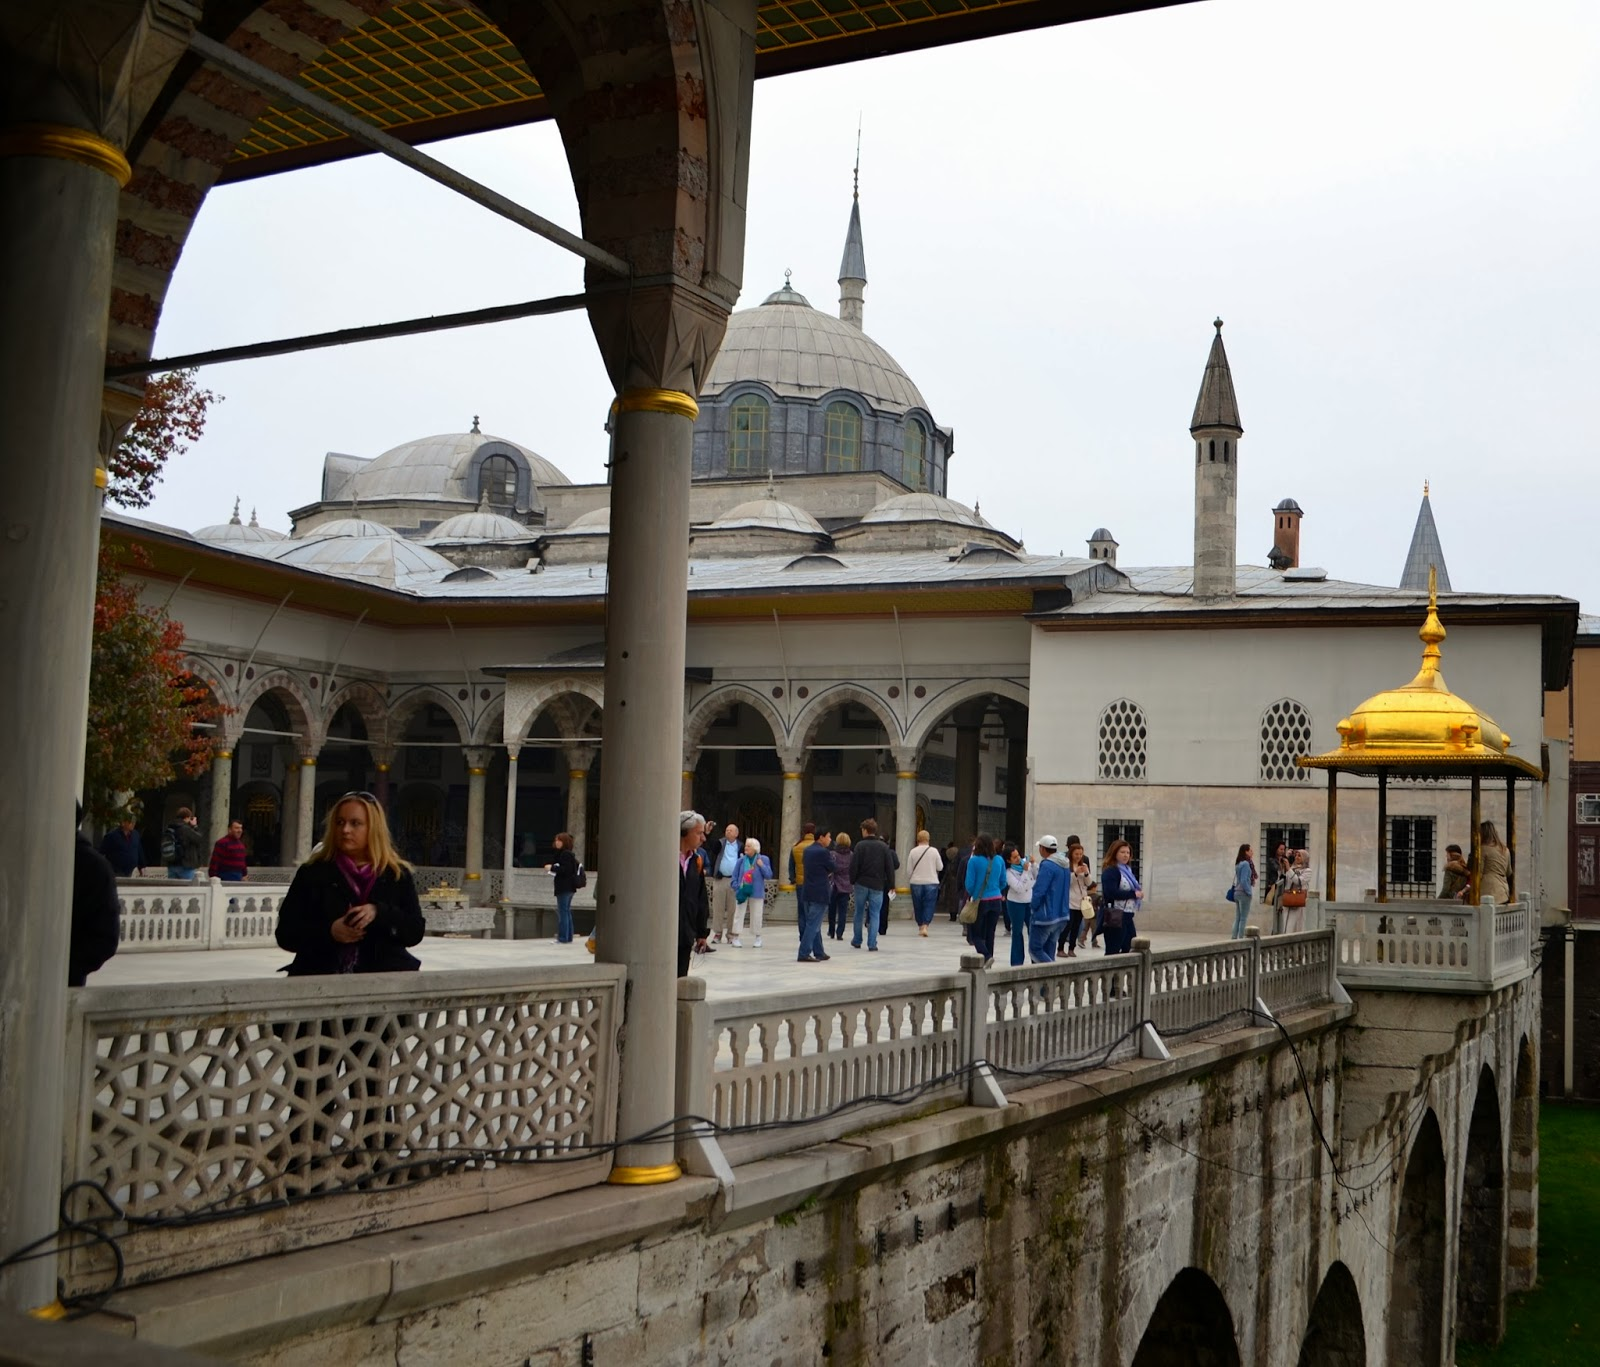 Eve 39 n song in london istanbul topkapi palace for The terrace hall